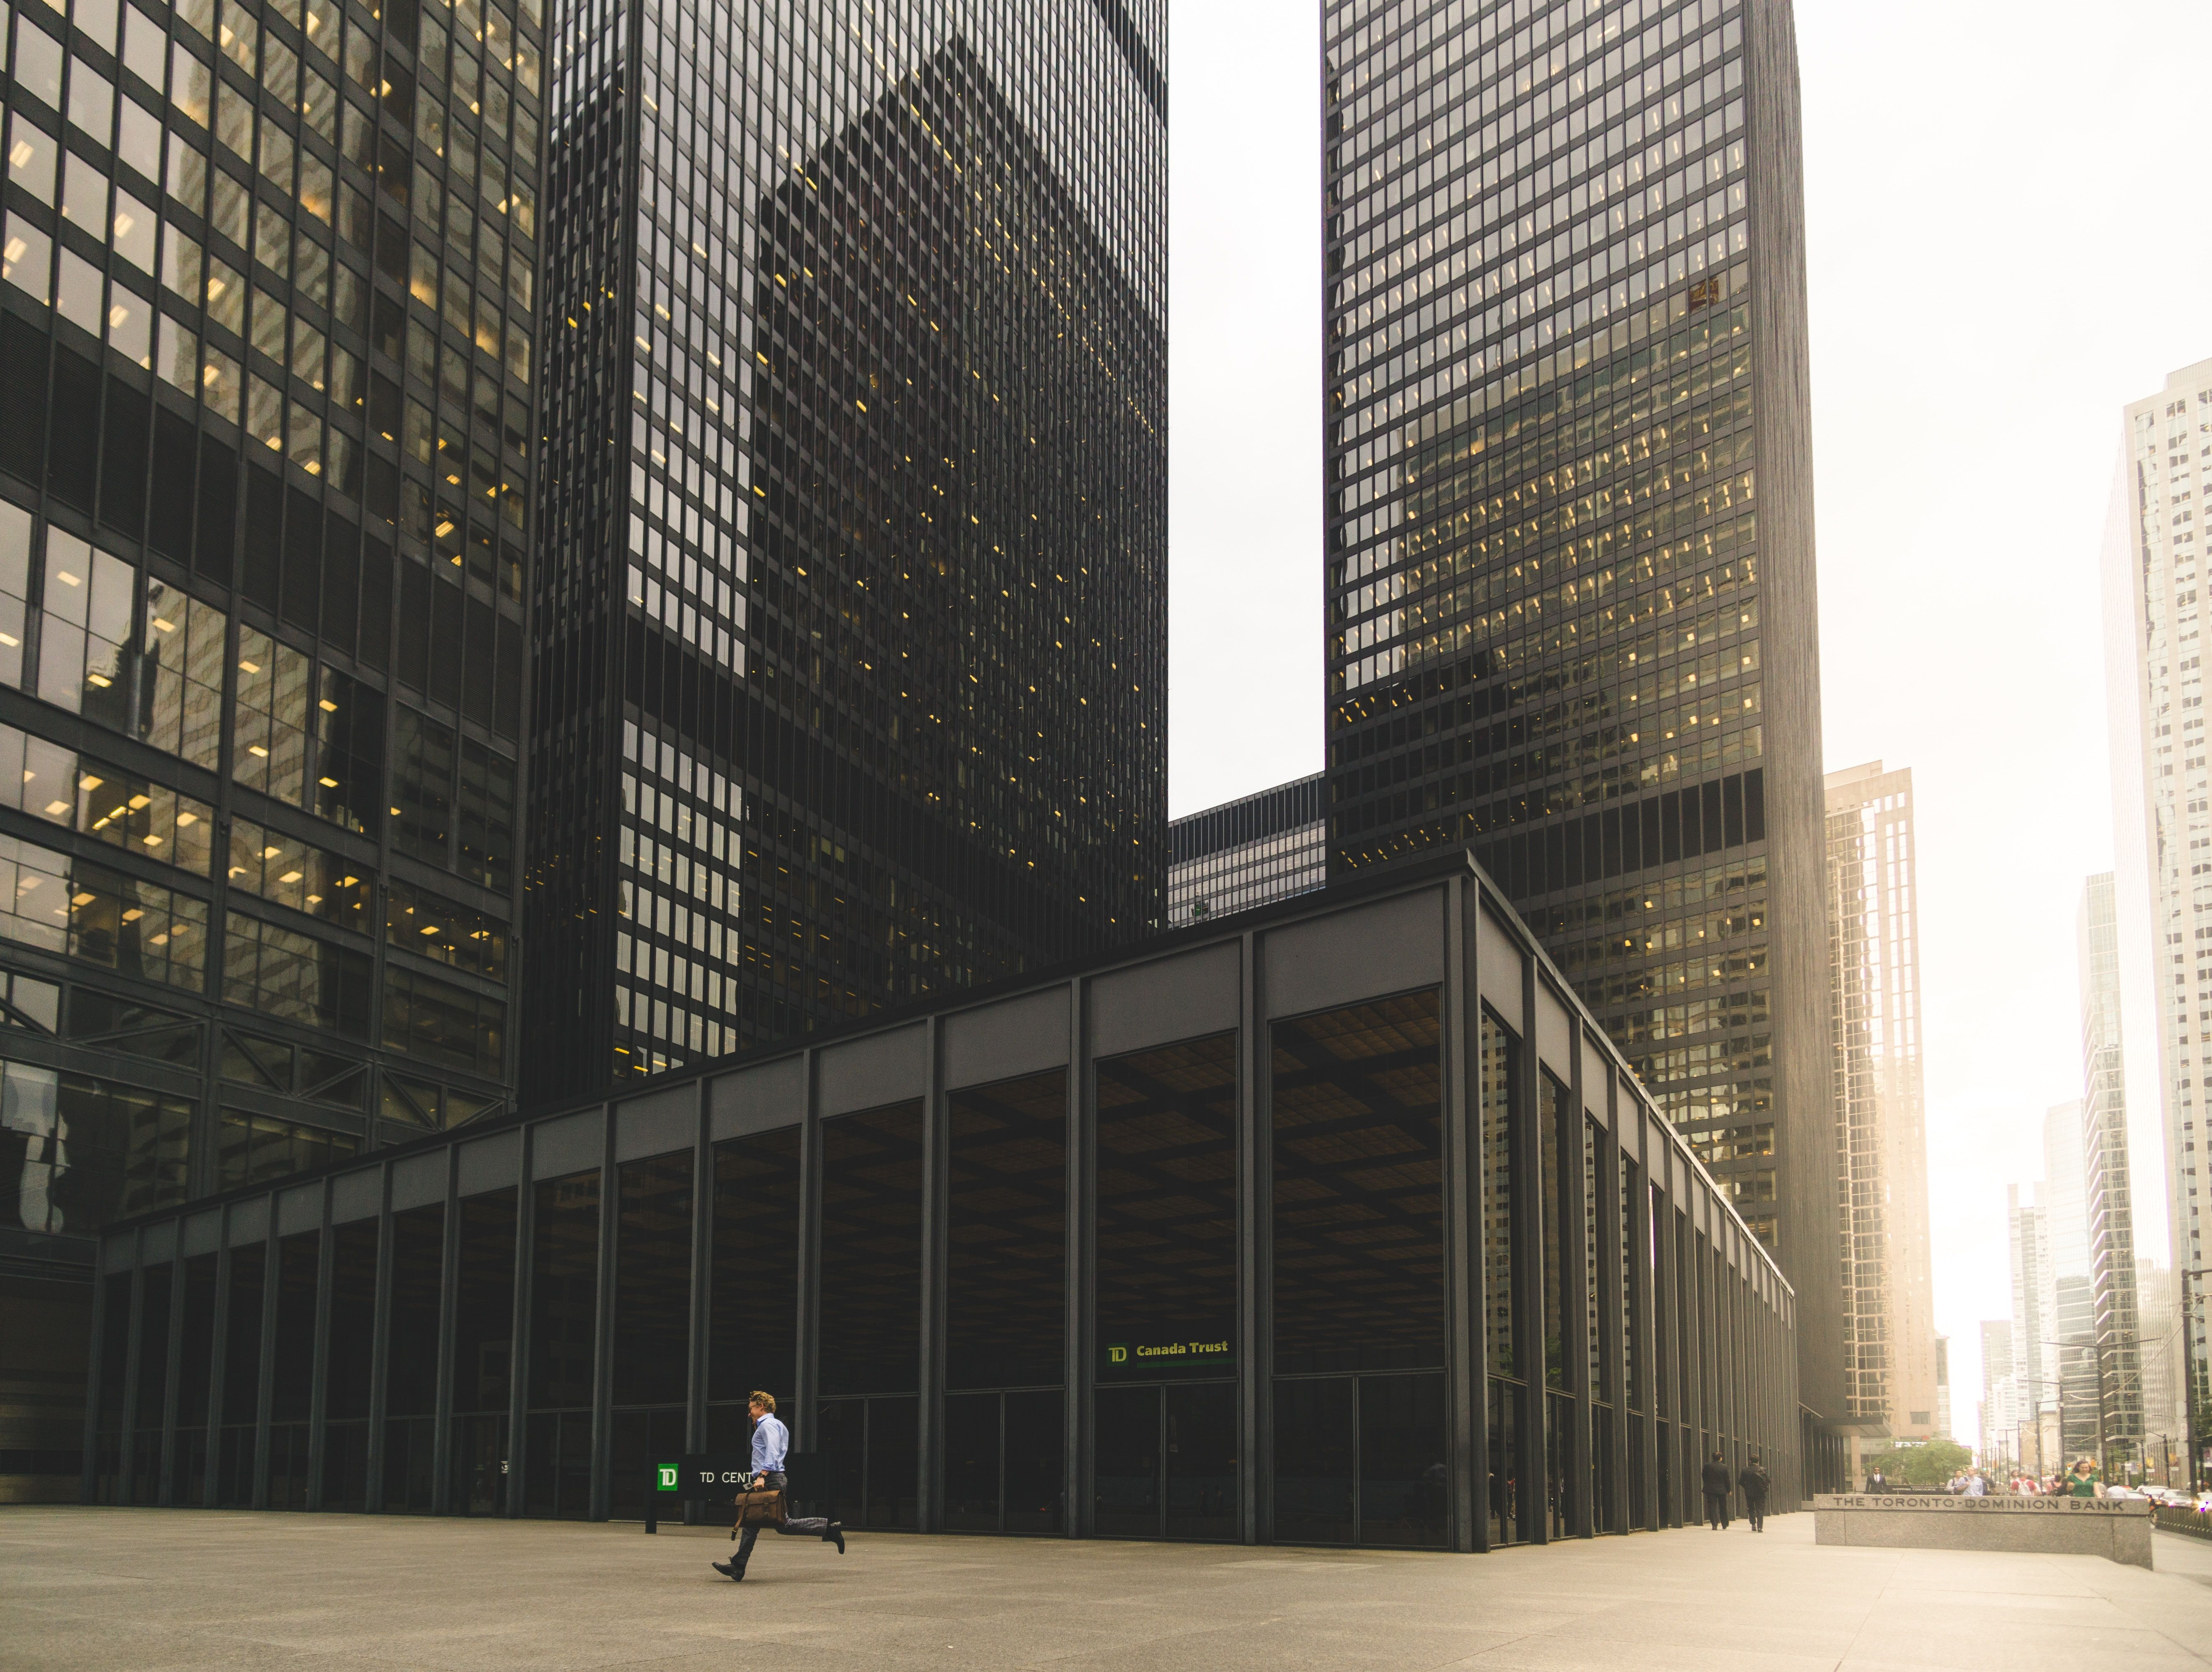 large bank building with man in shirt running